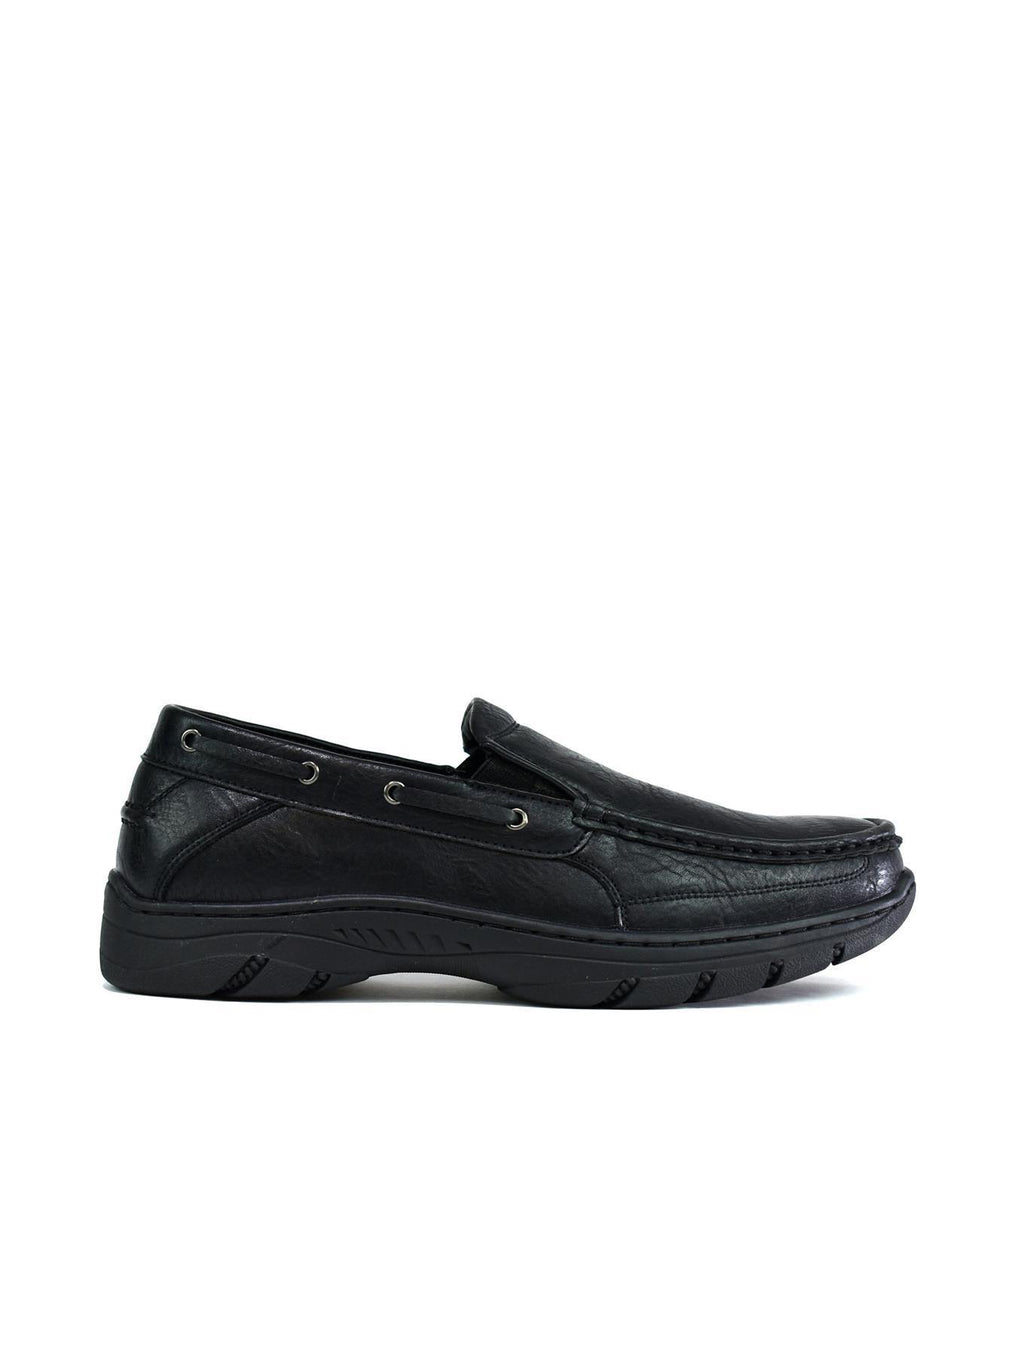 Men's Thick Sole Slip On Walking Shoes Black - DadiTude